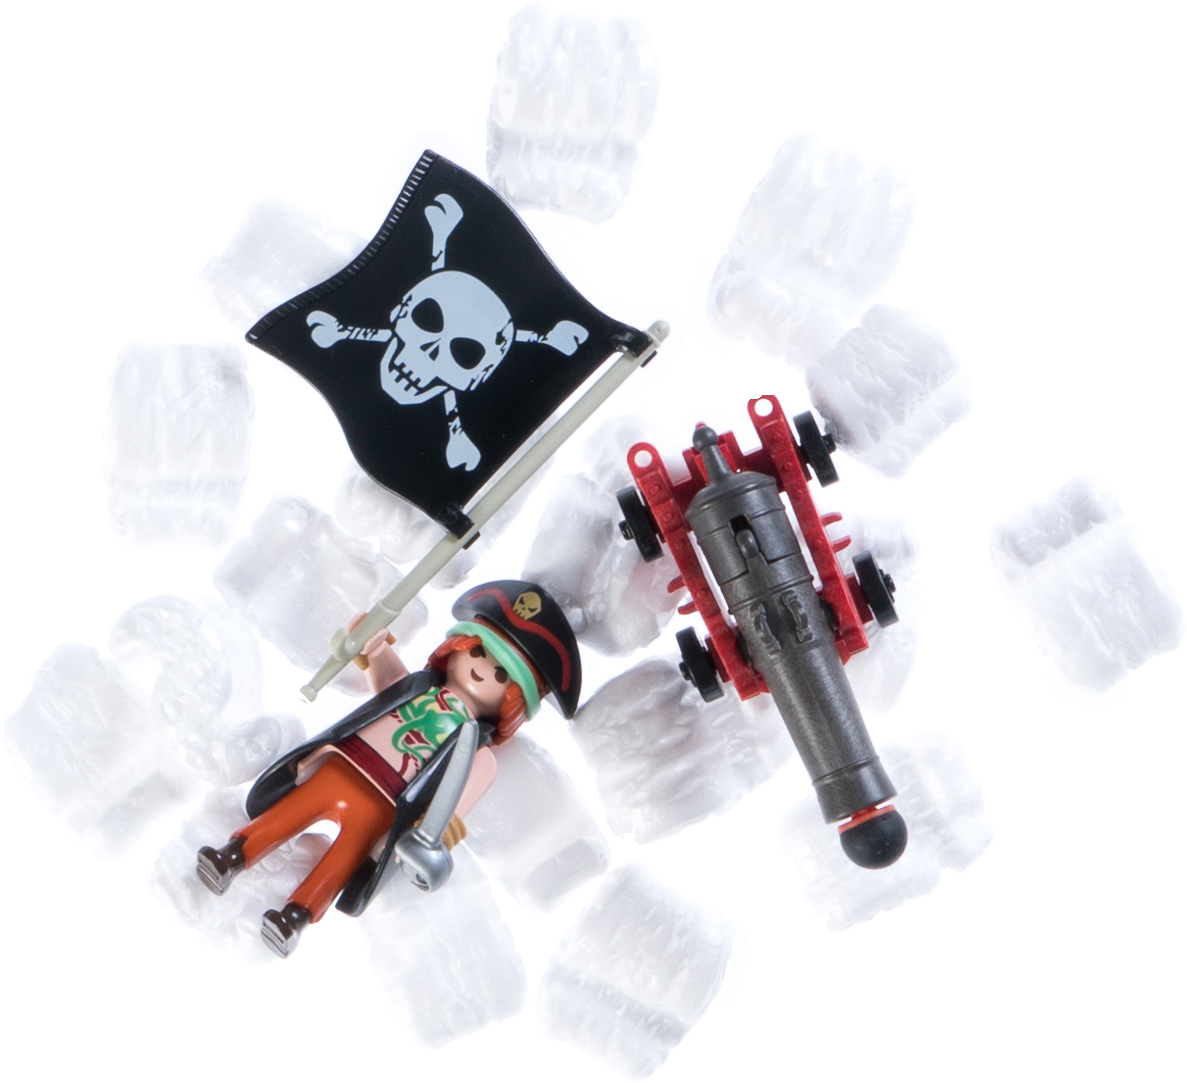 Shipping a pirate with a pirate flag and cannon